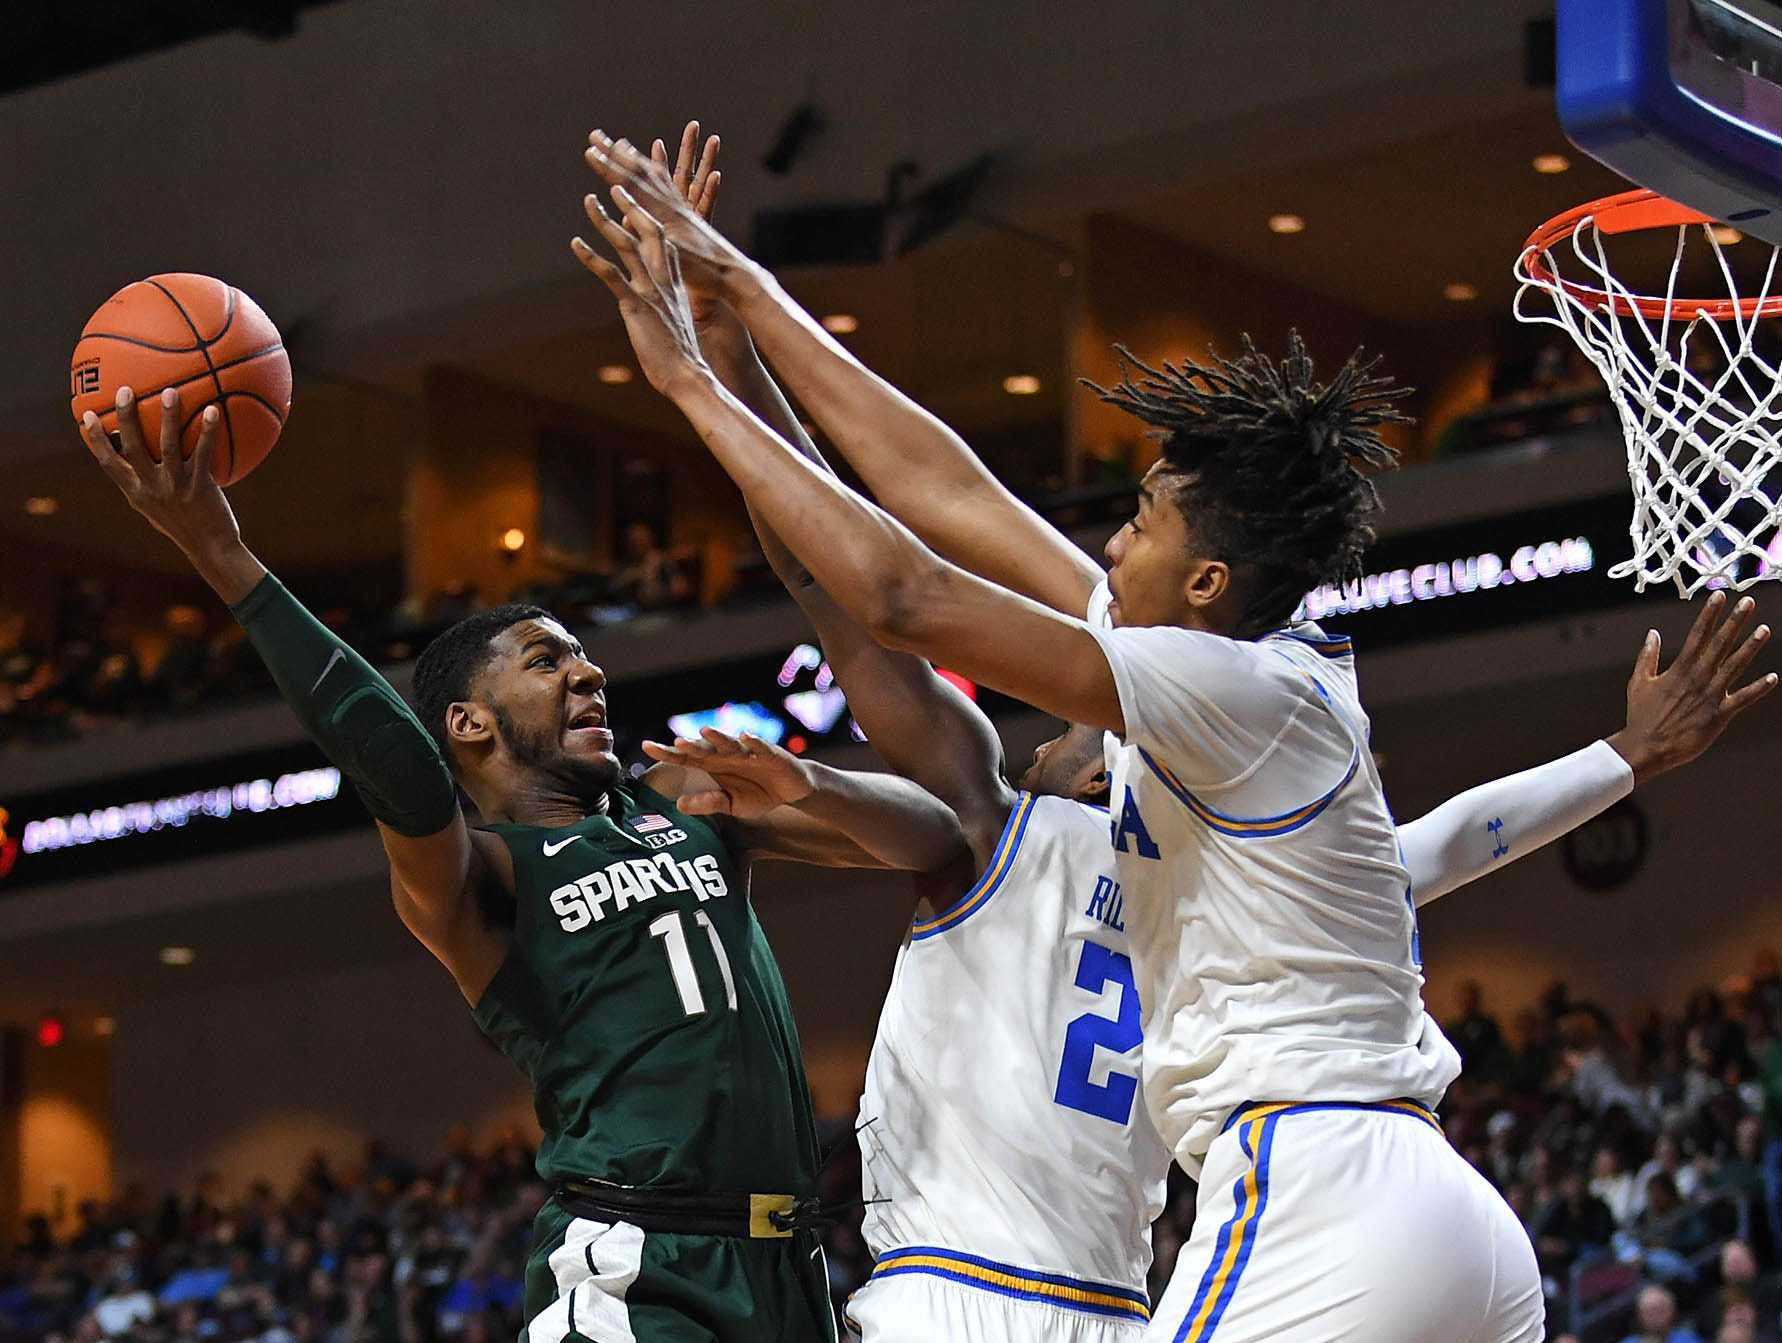 Nov 22, 2018; Las Vegas, NV, USA; Michigan State Spartans forward Aaron Henry (11) shoots during the first half against the UCLA Bruins at Orleans Arena. Mandatory Credit: Stephen R. Sylvanie-USA TODAY Sports